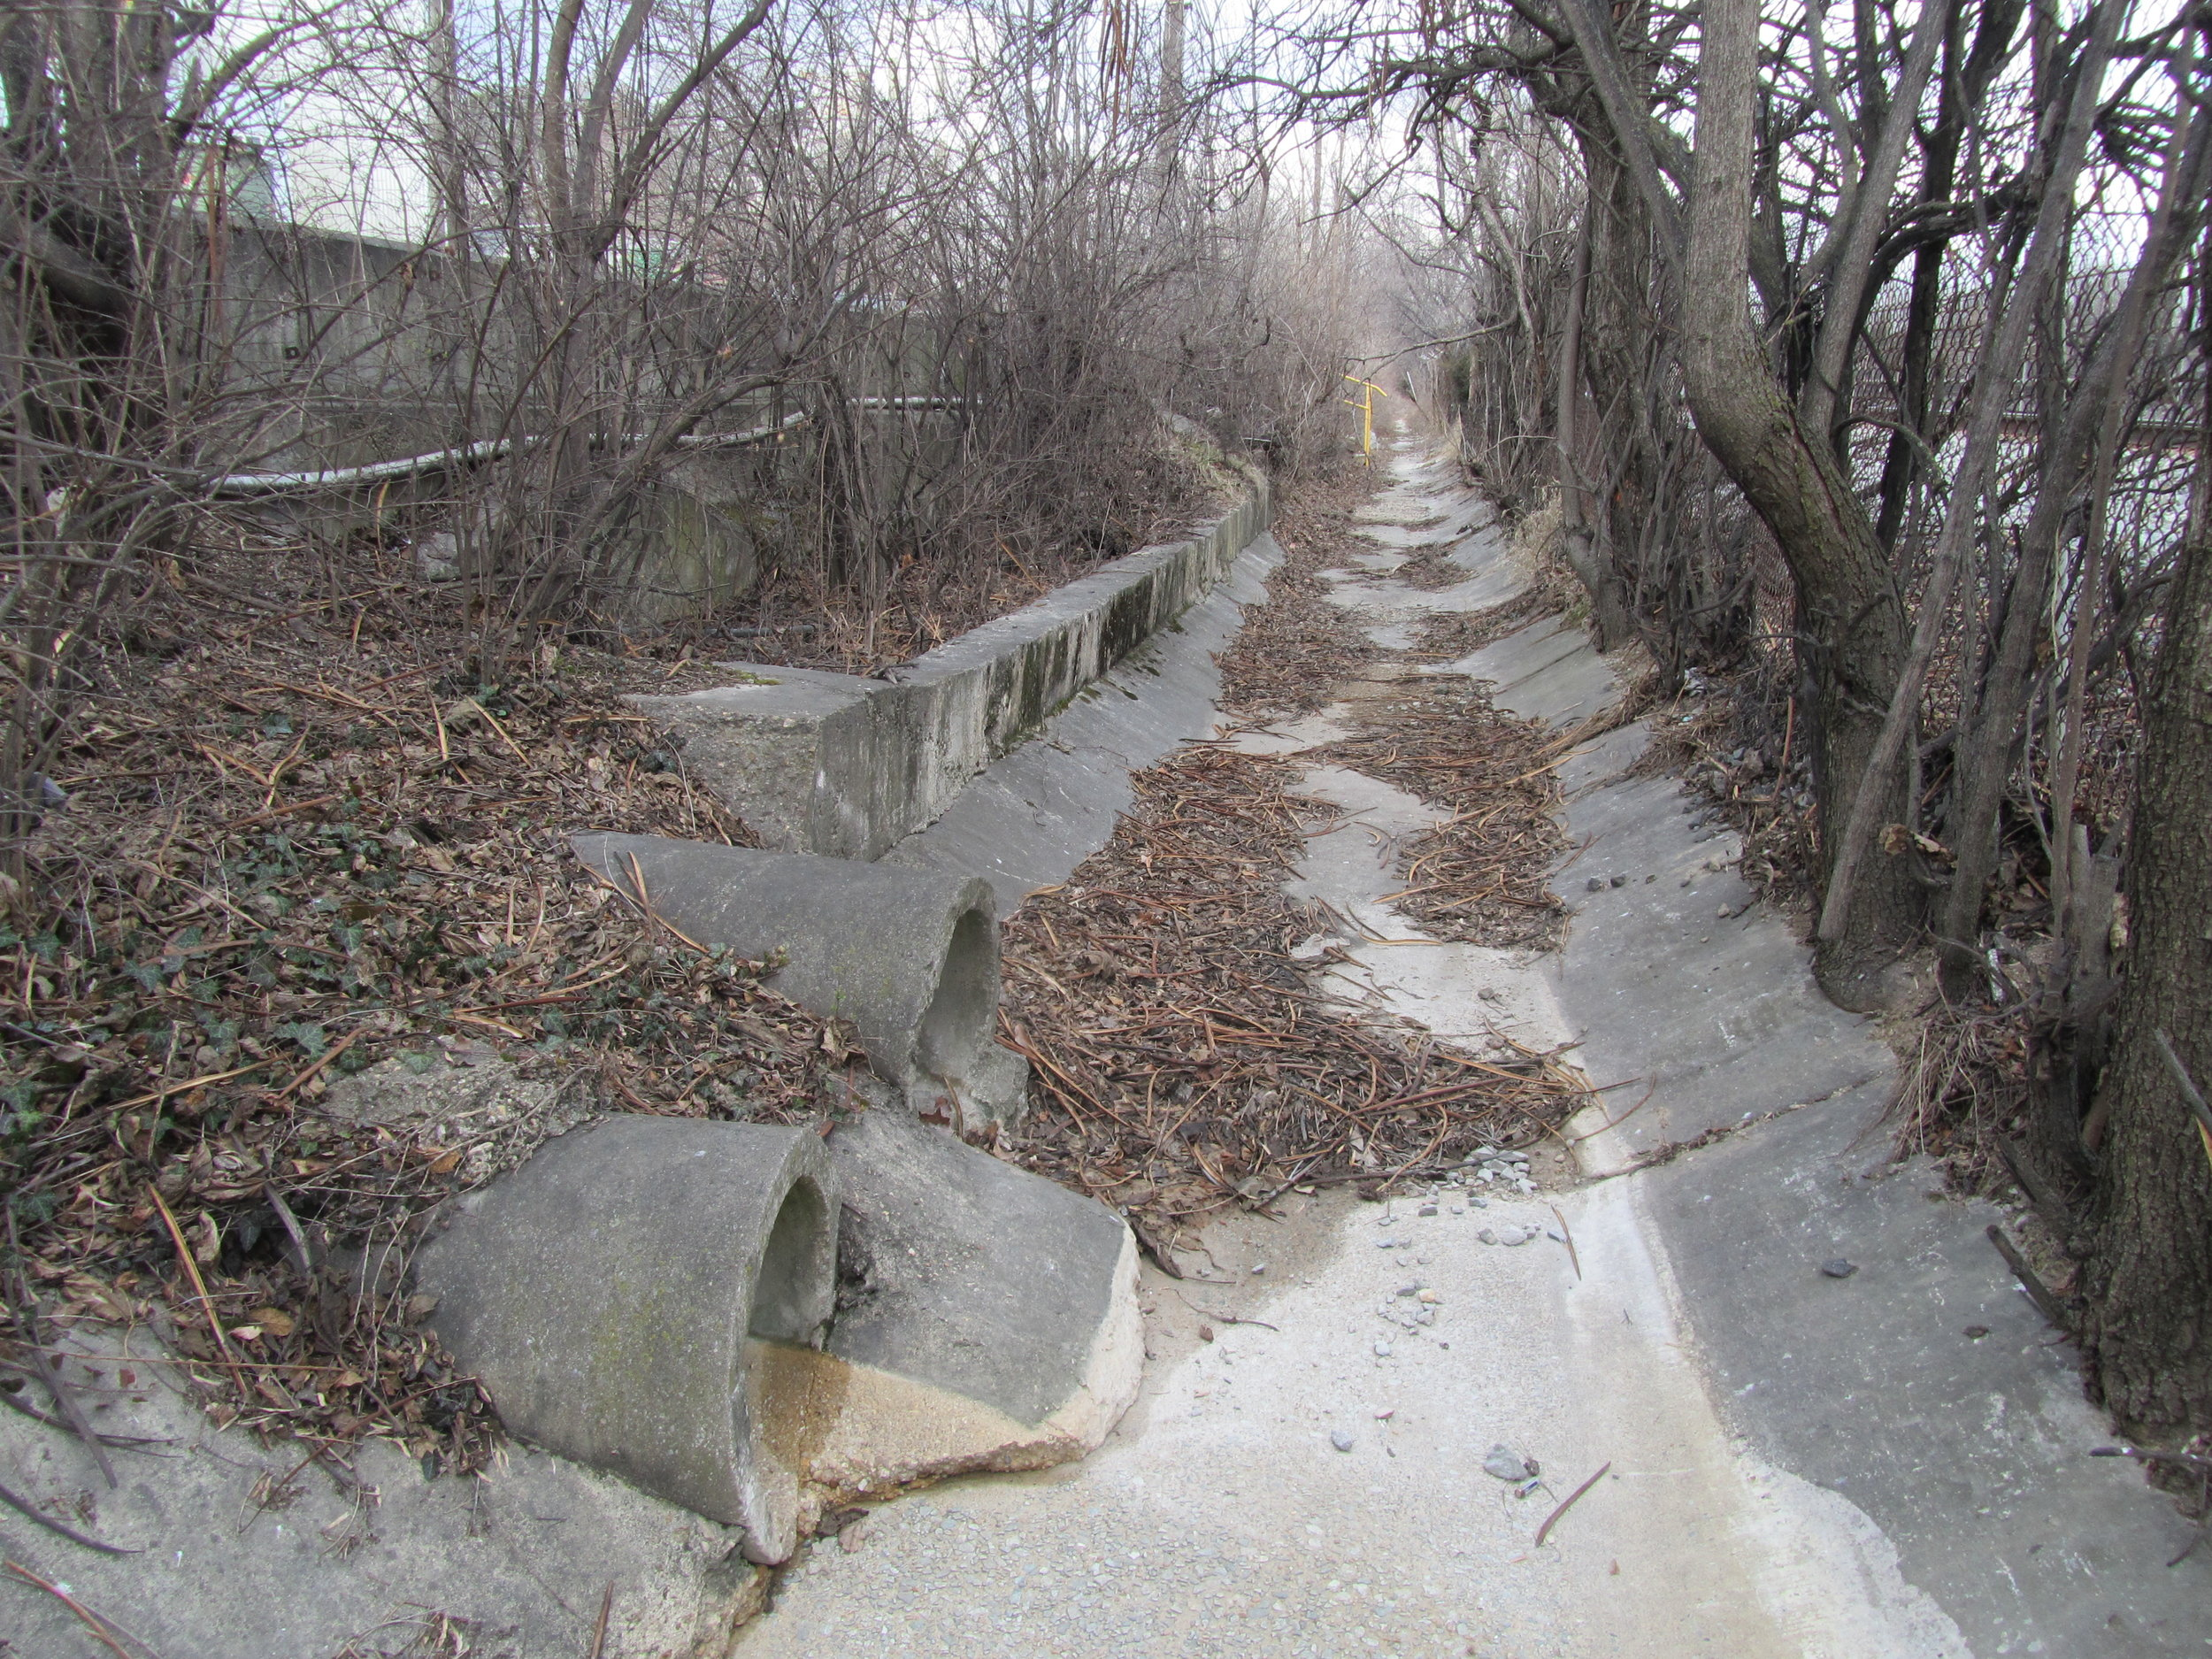 Concrete swale b/t Aggregate Ind. and WMATA properties